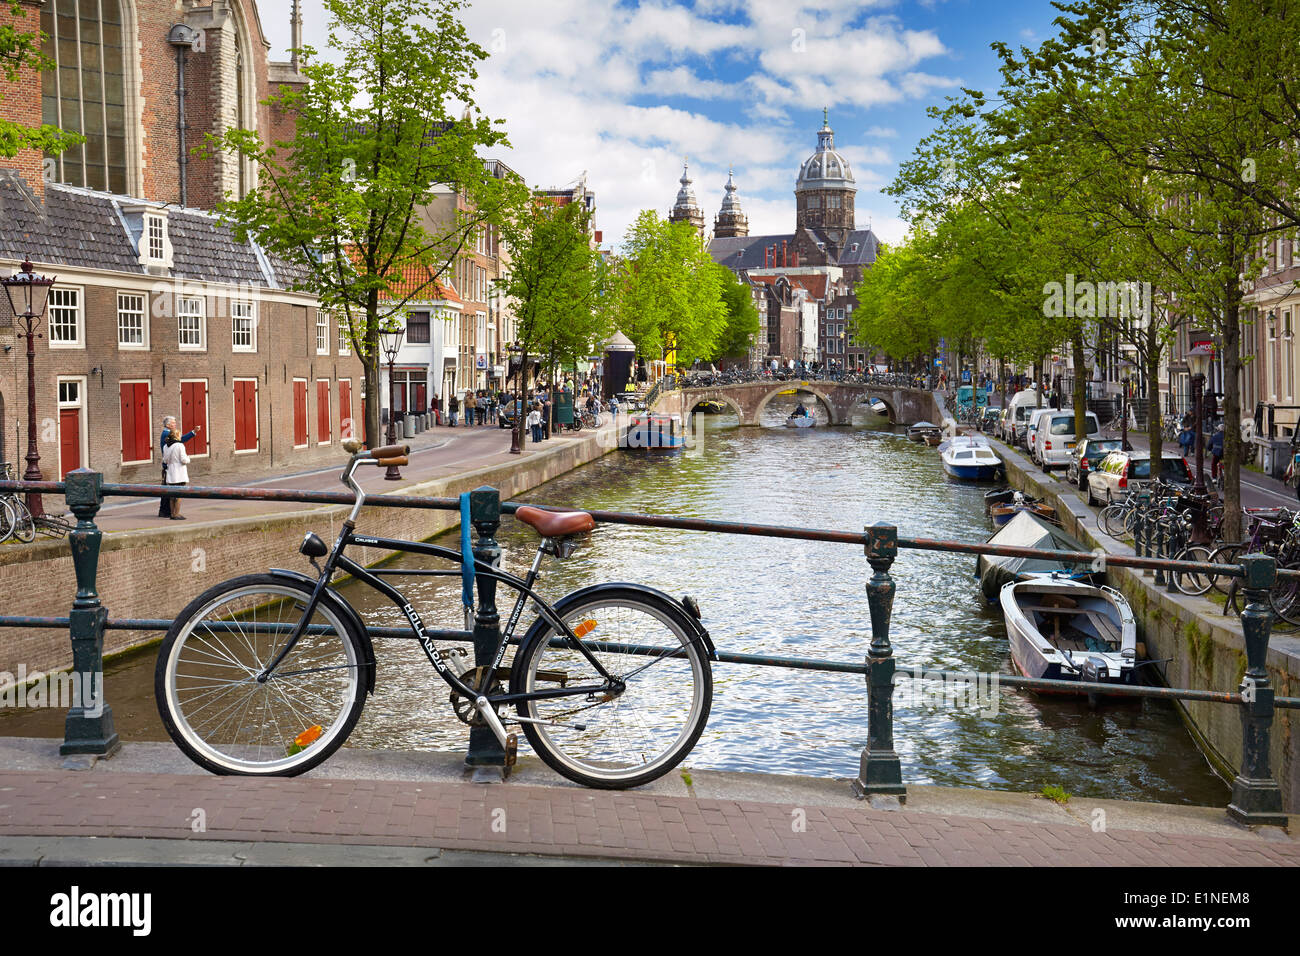 Bicycle on Amsterdam canal, Holland, Netherlands - Stock Image